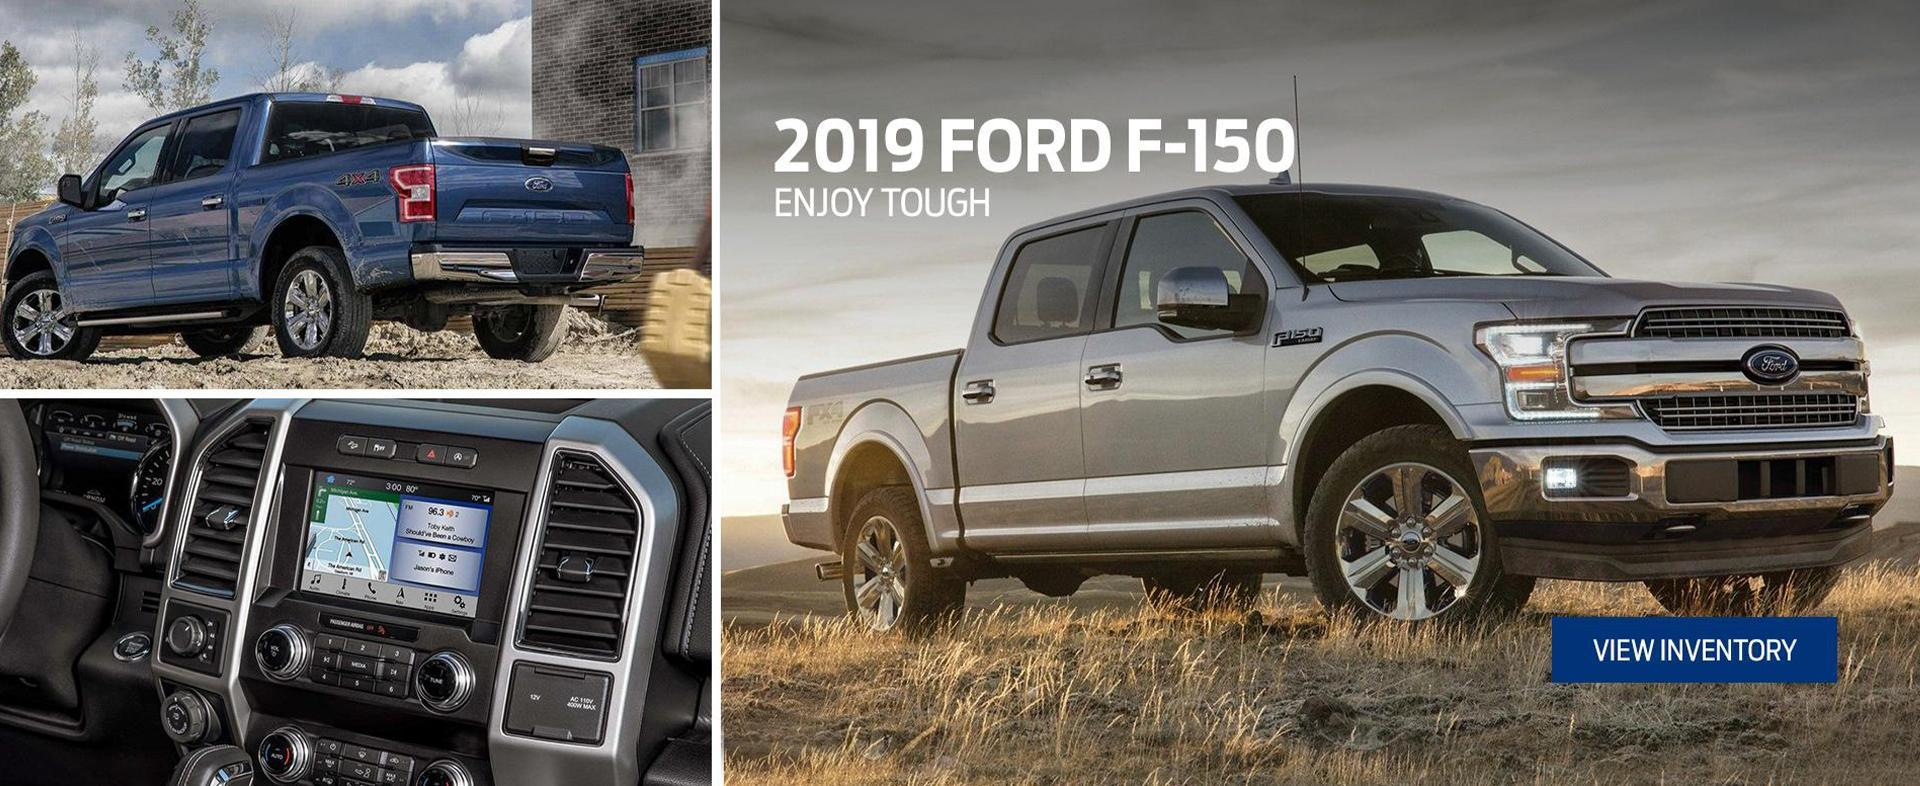 Ford Home F-150